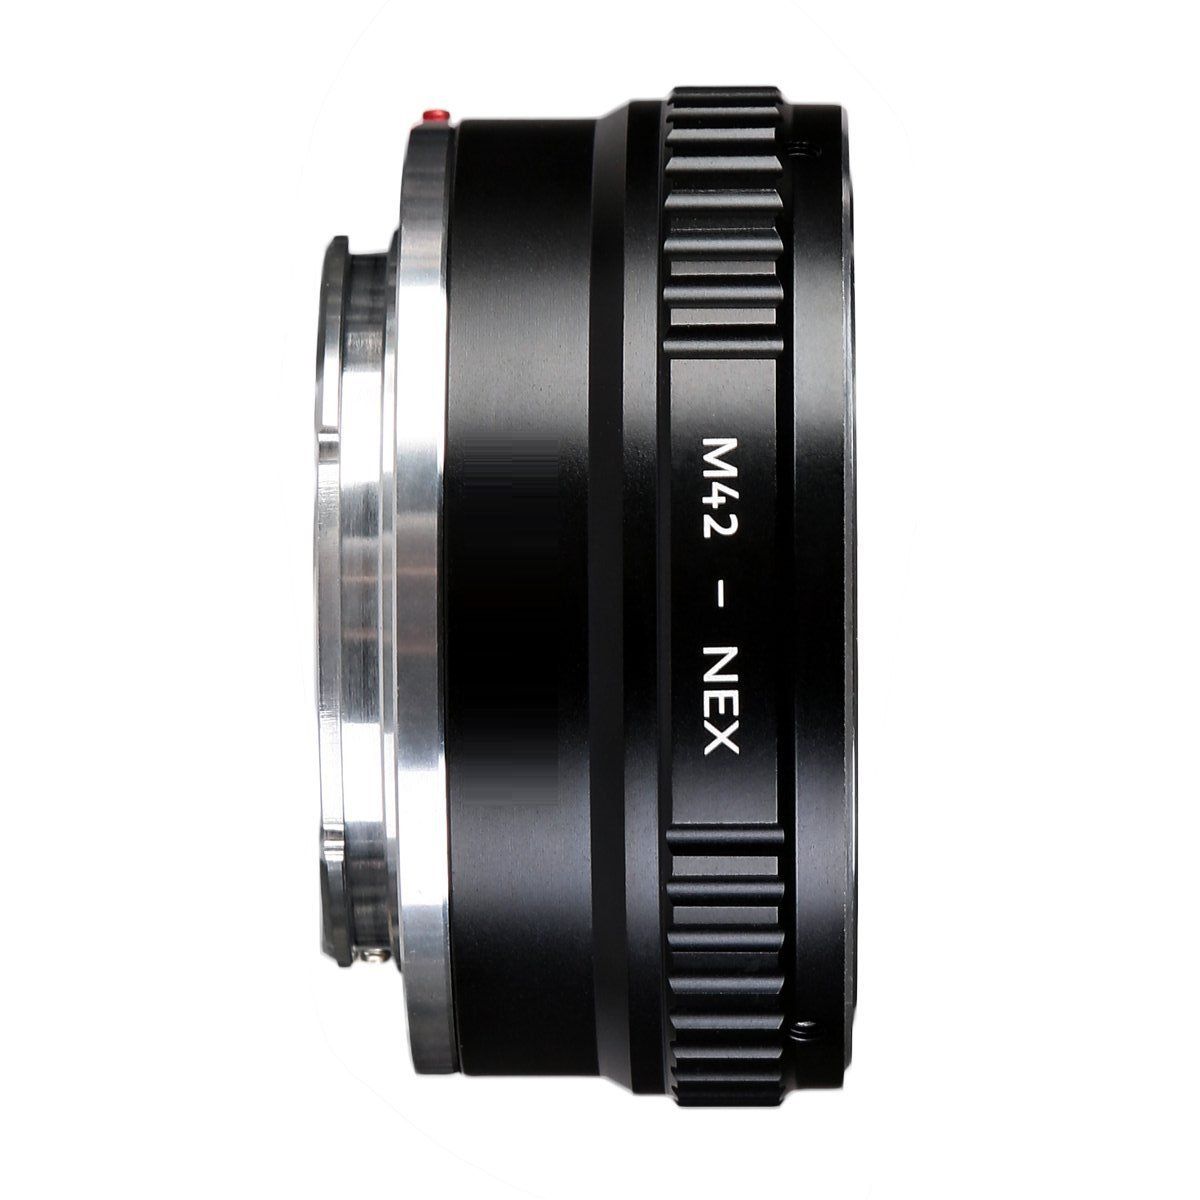 Adapter To Convert M42-Mount Lens To E-Mount For Alpha a7, a7S, a7IIK, a7II, a7R II, a6500, a6300, a6000, a5000, a5100, a3000 Mirrorless Digital Camera